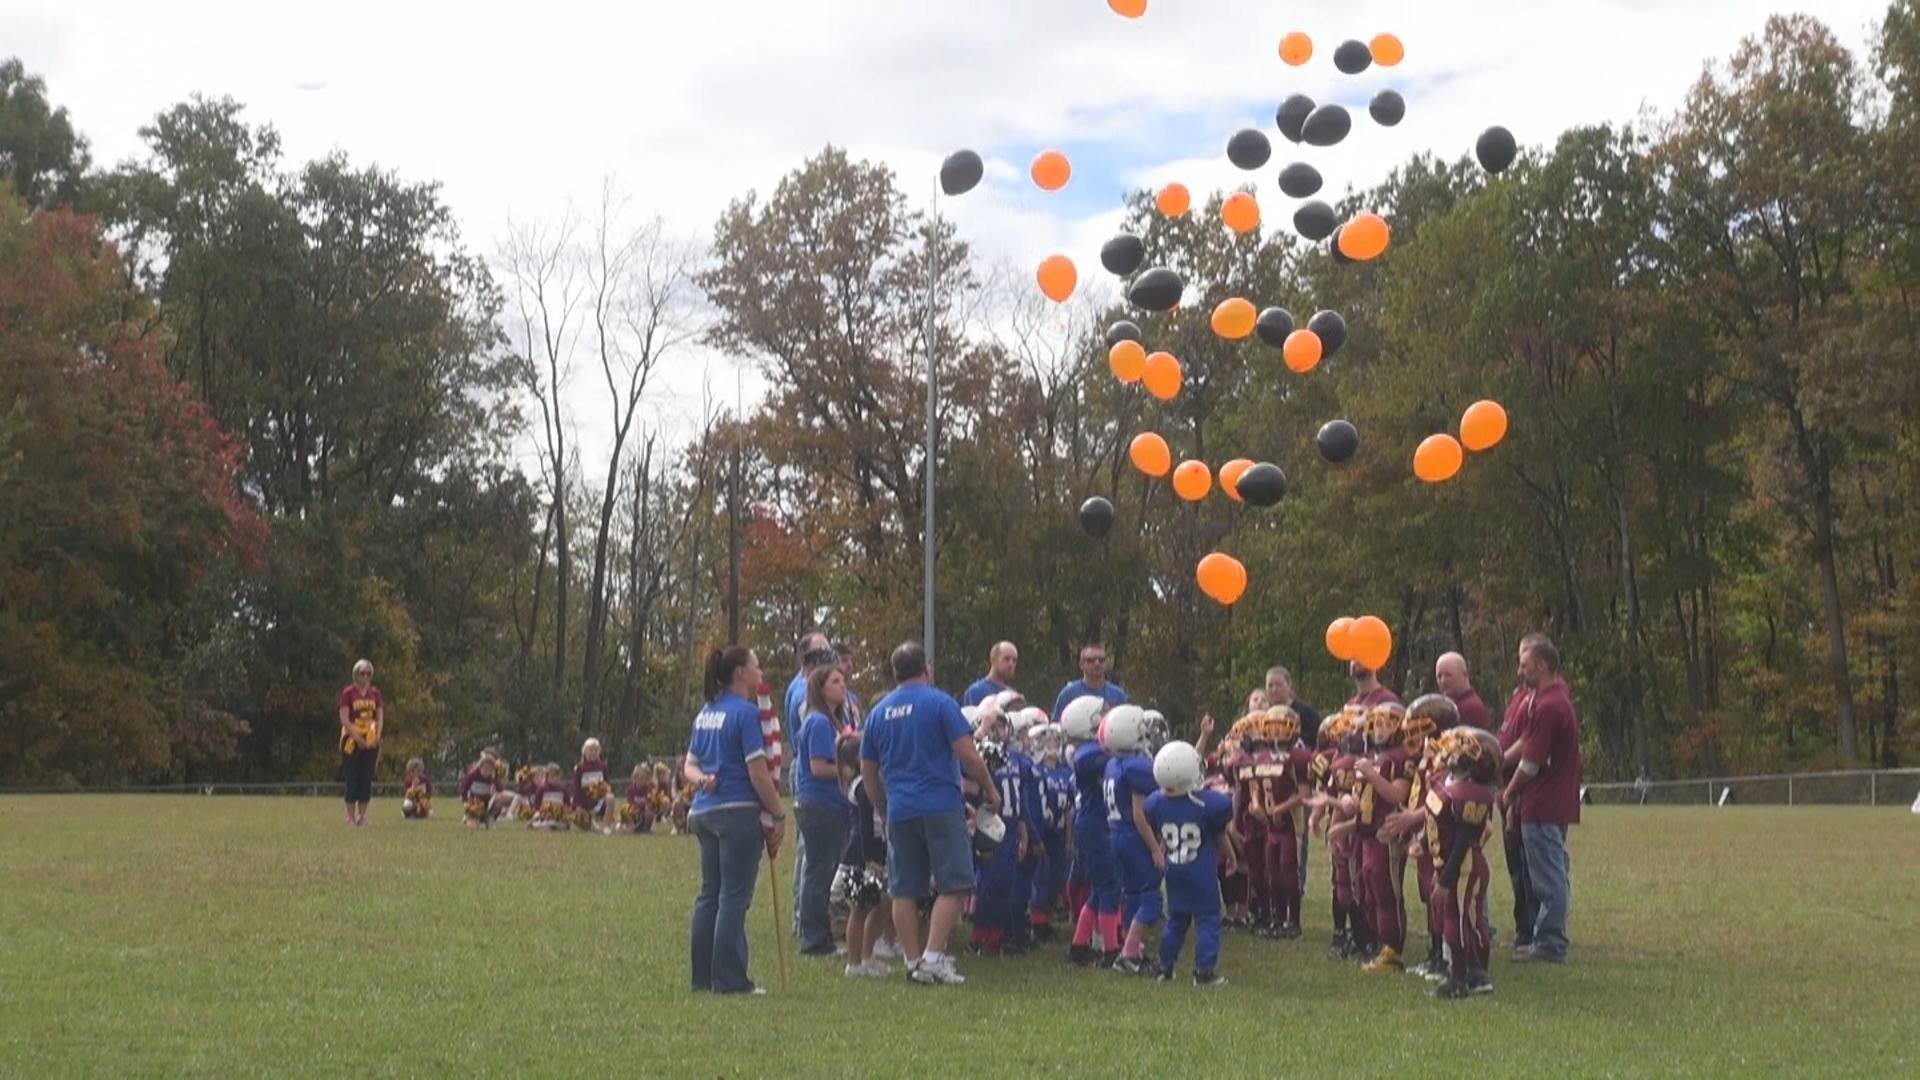 © Football players, cheerleaders, and fans let black and orange balloons go in Jeffries' honor.